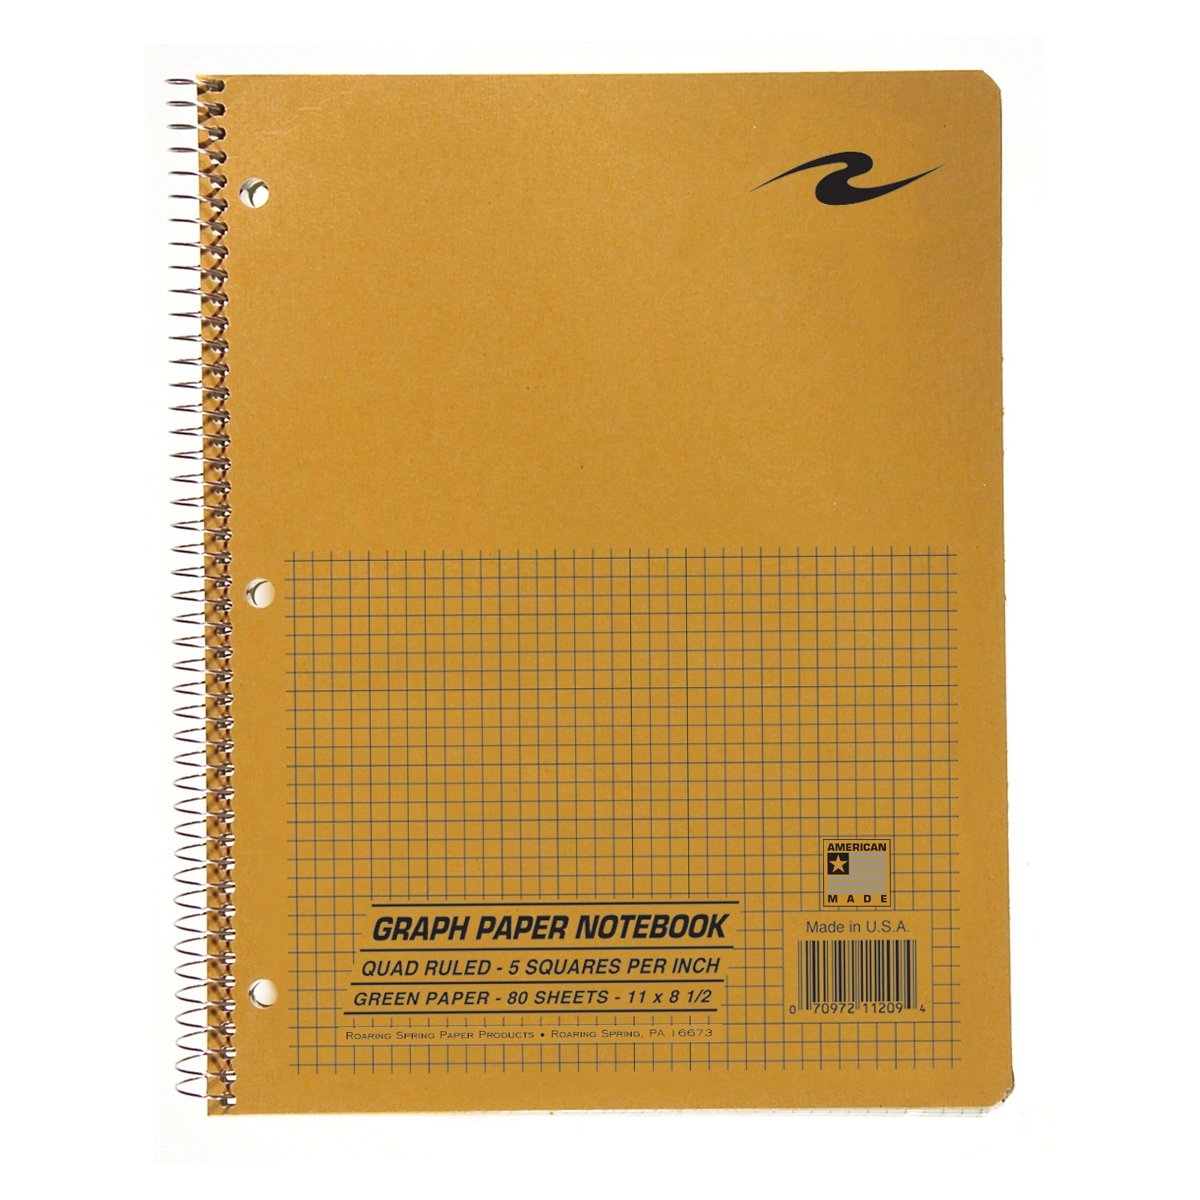 "WB NOTEBOOK GREEN PAPER 11""x8.5"" 5X5 GRAPH RULED BROWN COV"